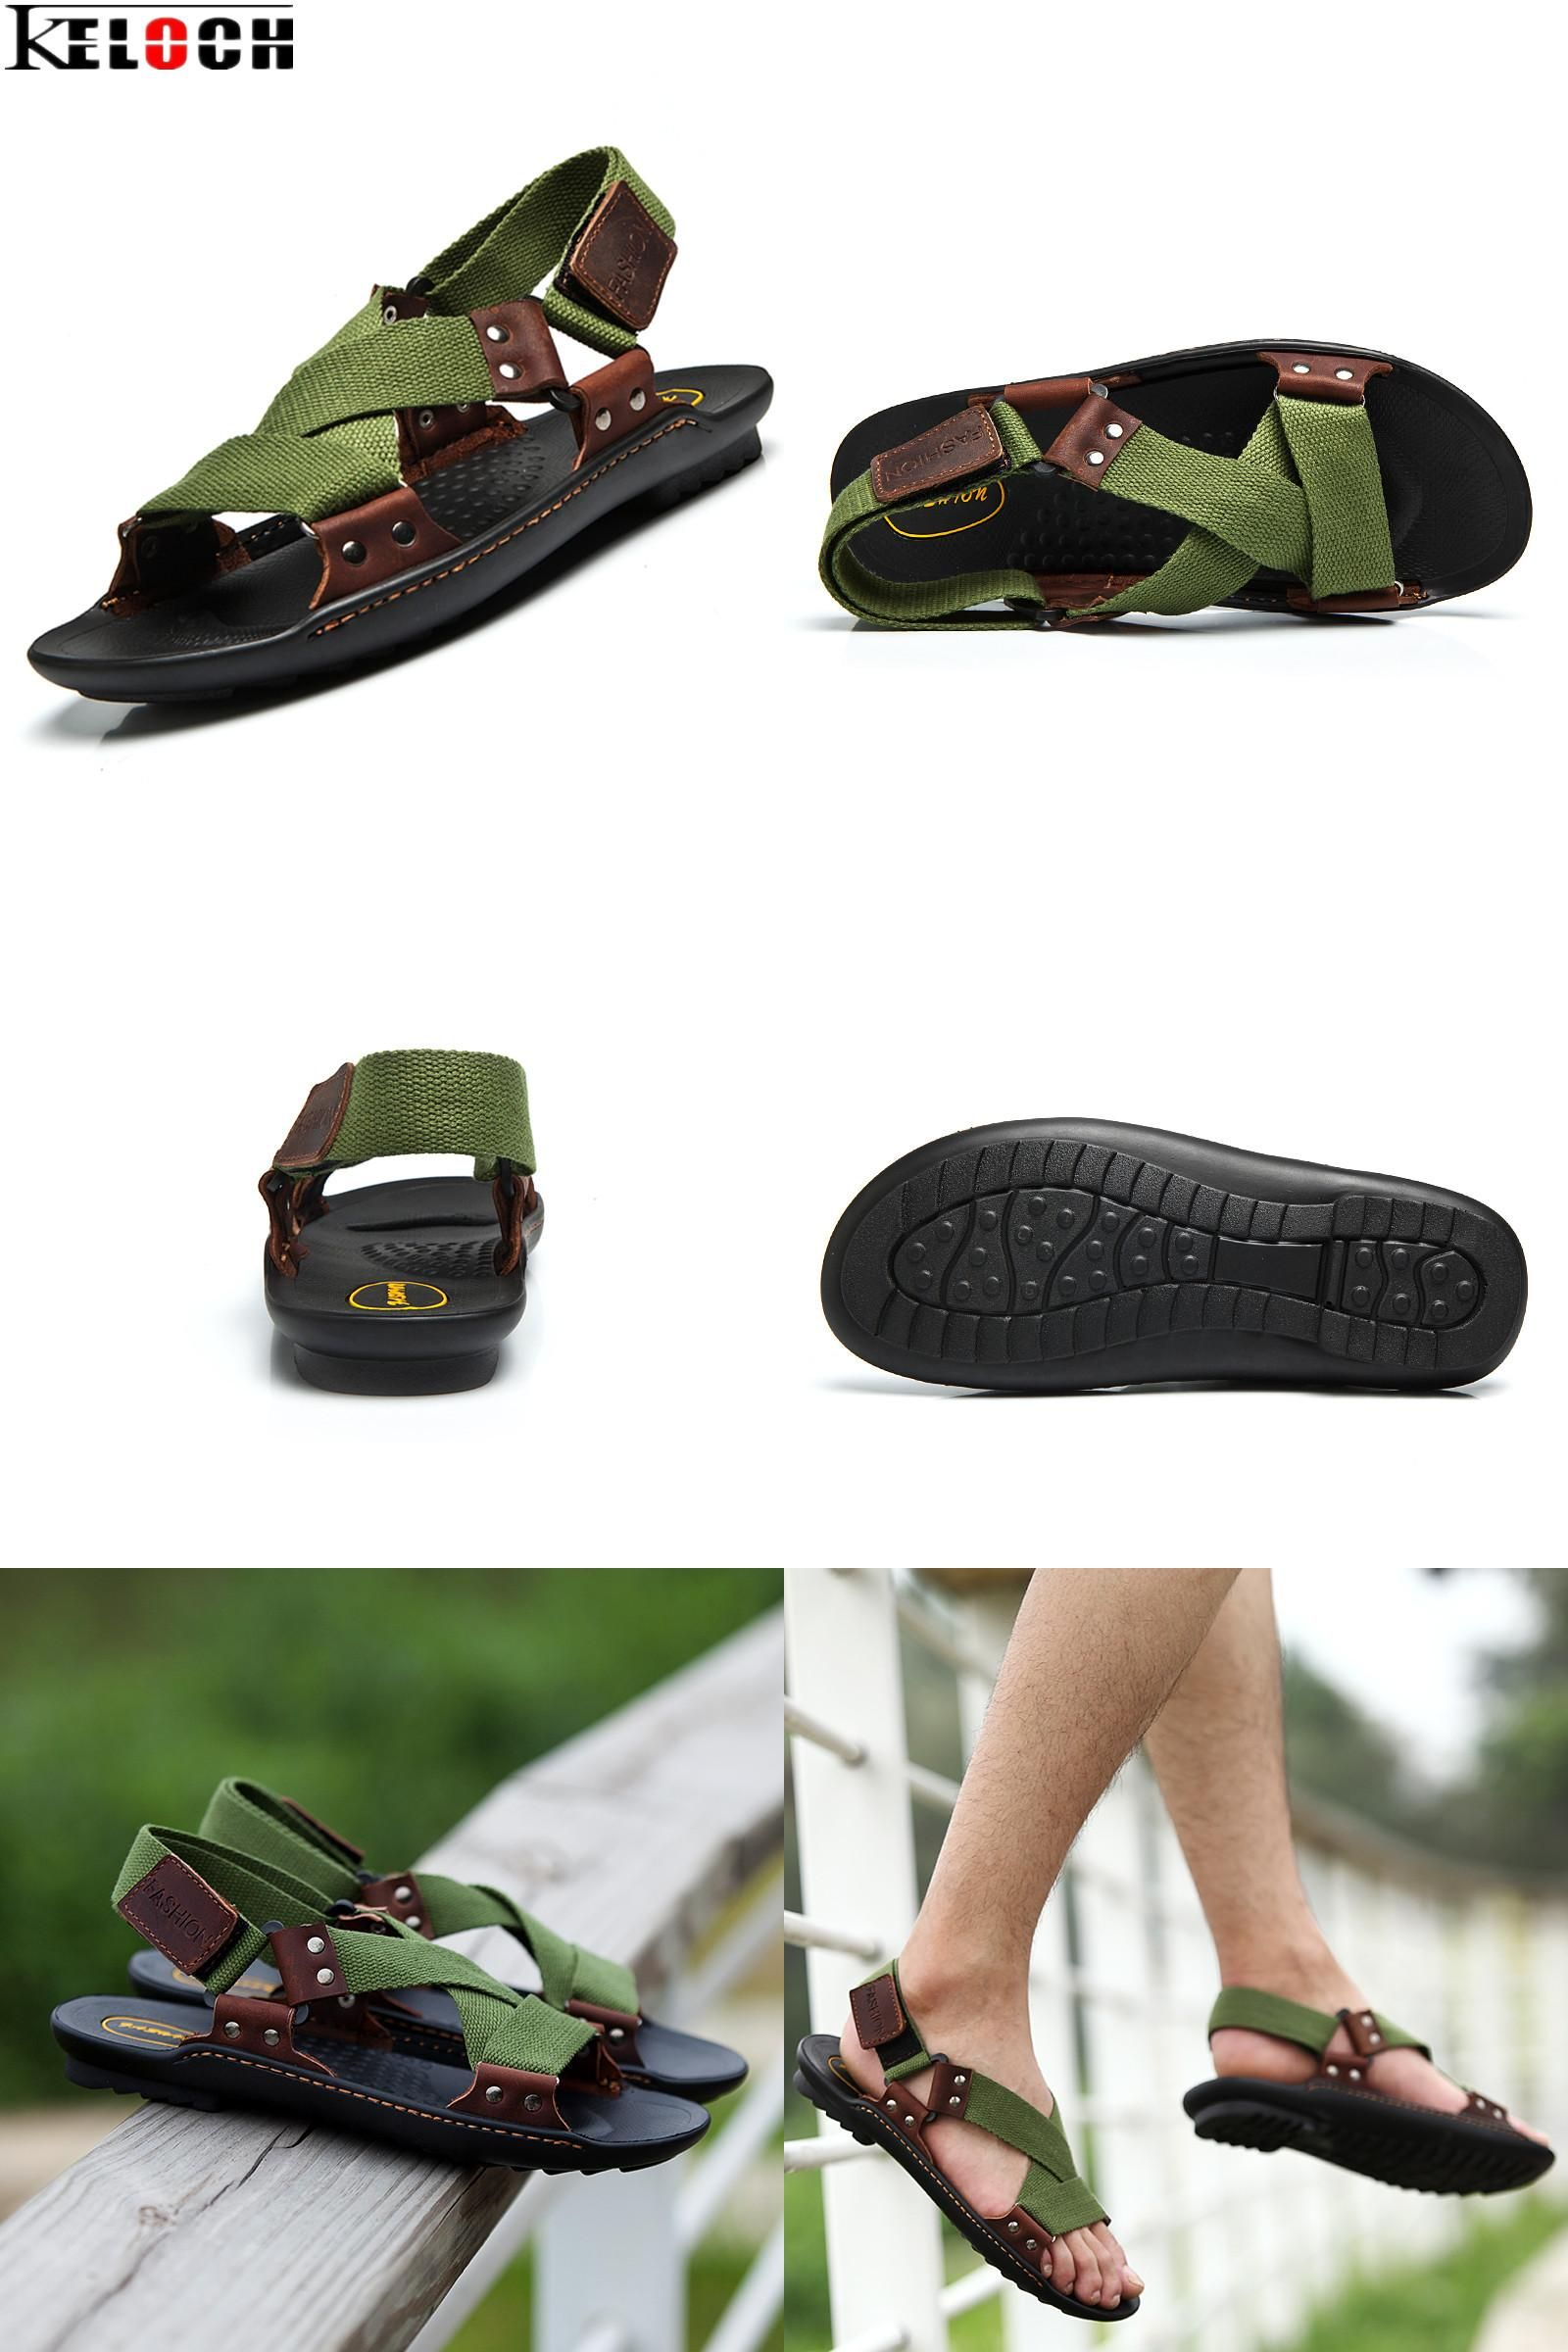 df7174eb8f1663  Visit to Buy  Keloch Summer Beach Shoes Sandals 2017 Fashion Designers Men  Sandals Brand Leather Slippers For Men Zapatos Sandalias Hombre   Advertisement